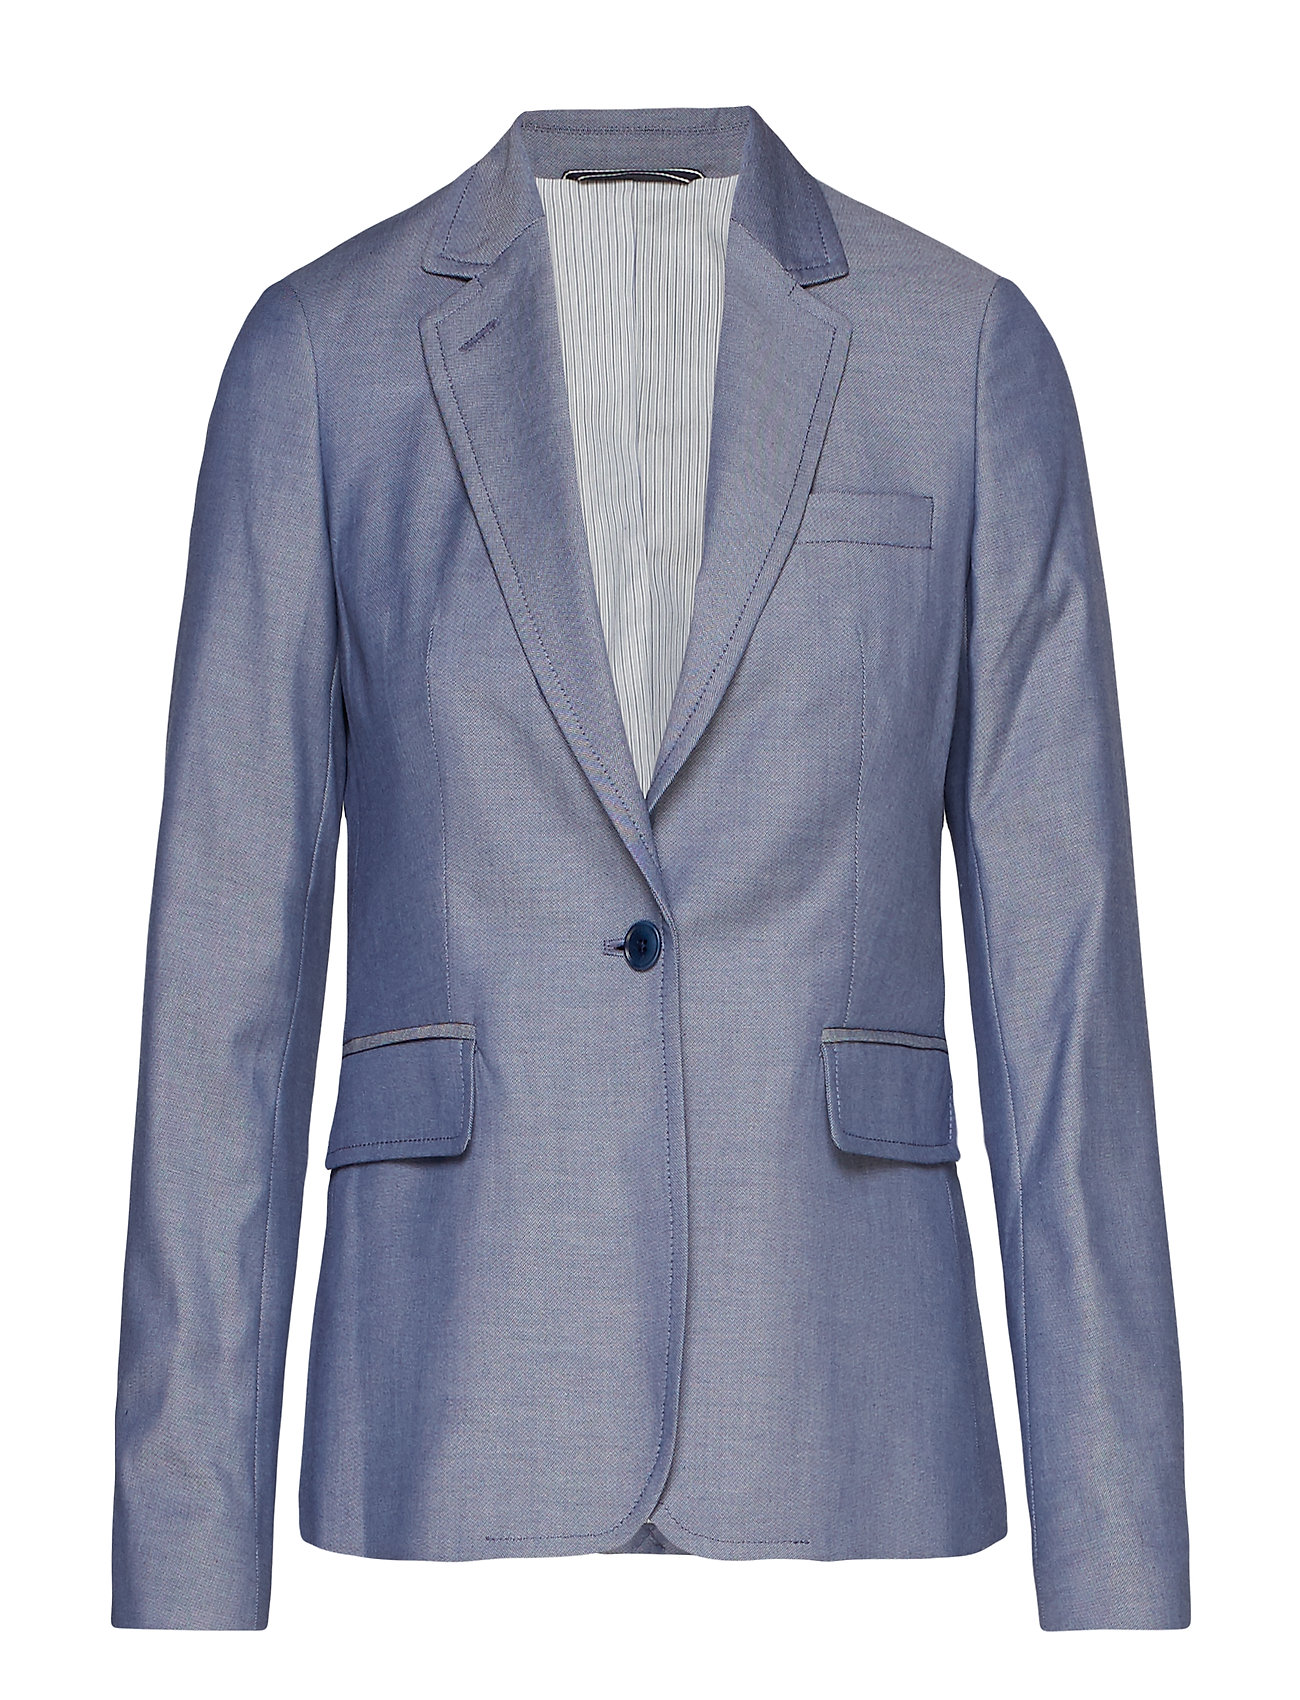 GANT D1. WASHABLE CHAMBRAY BLAZER - PERSIAN BLUE